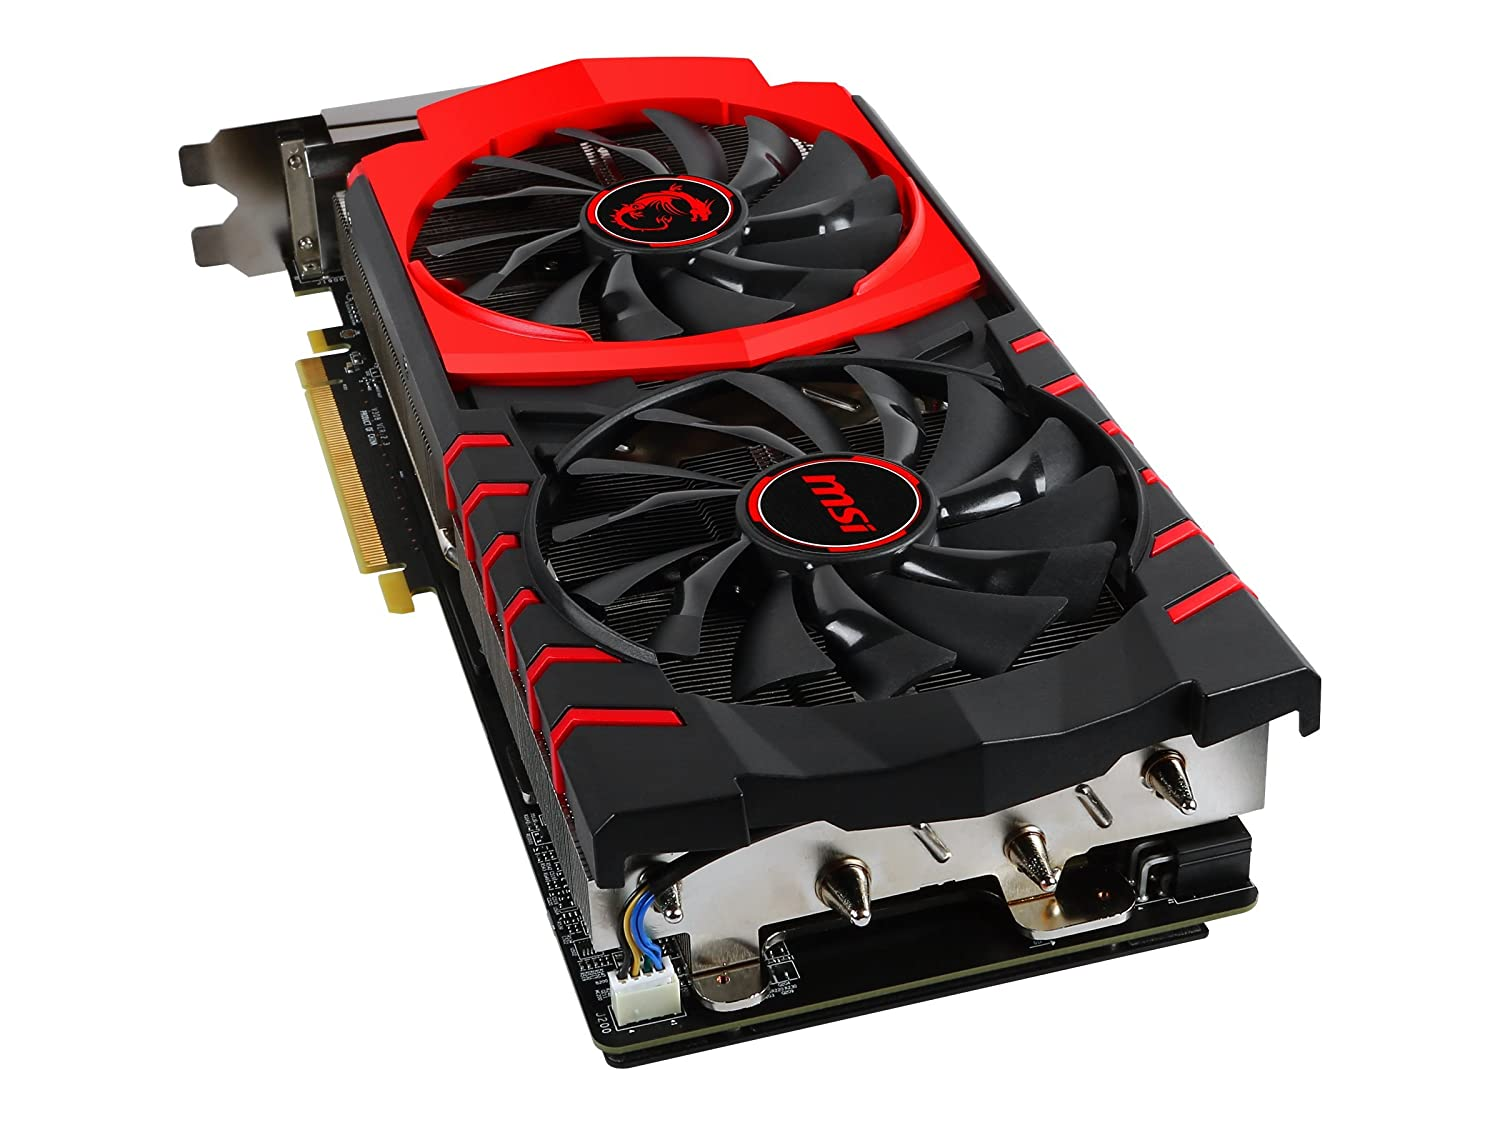 MSI R9 390X GAMING 8G Graphics Card